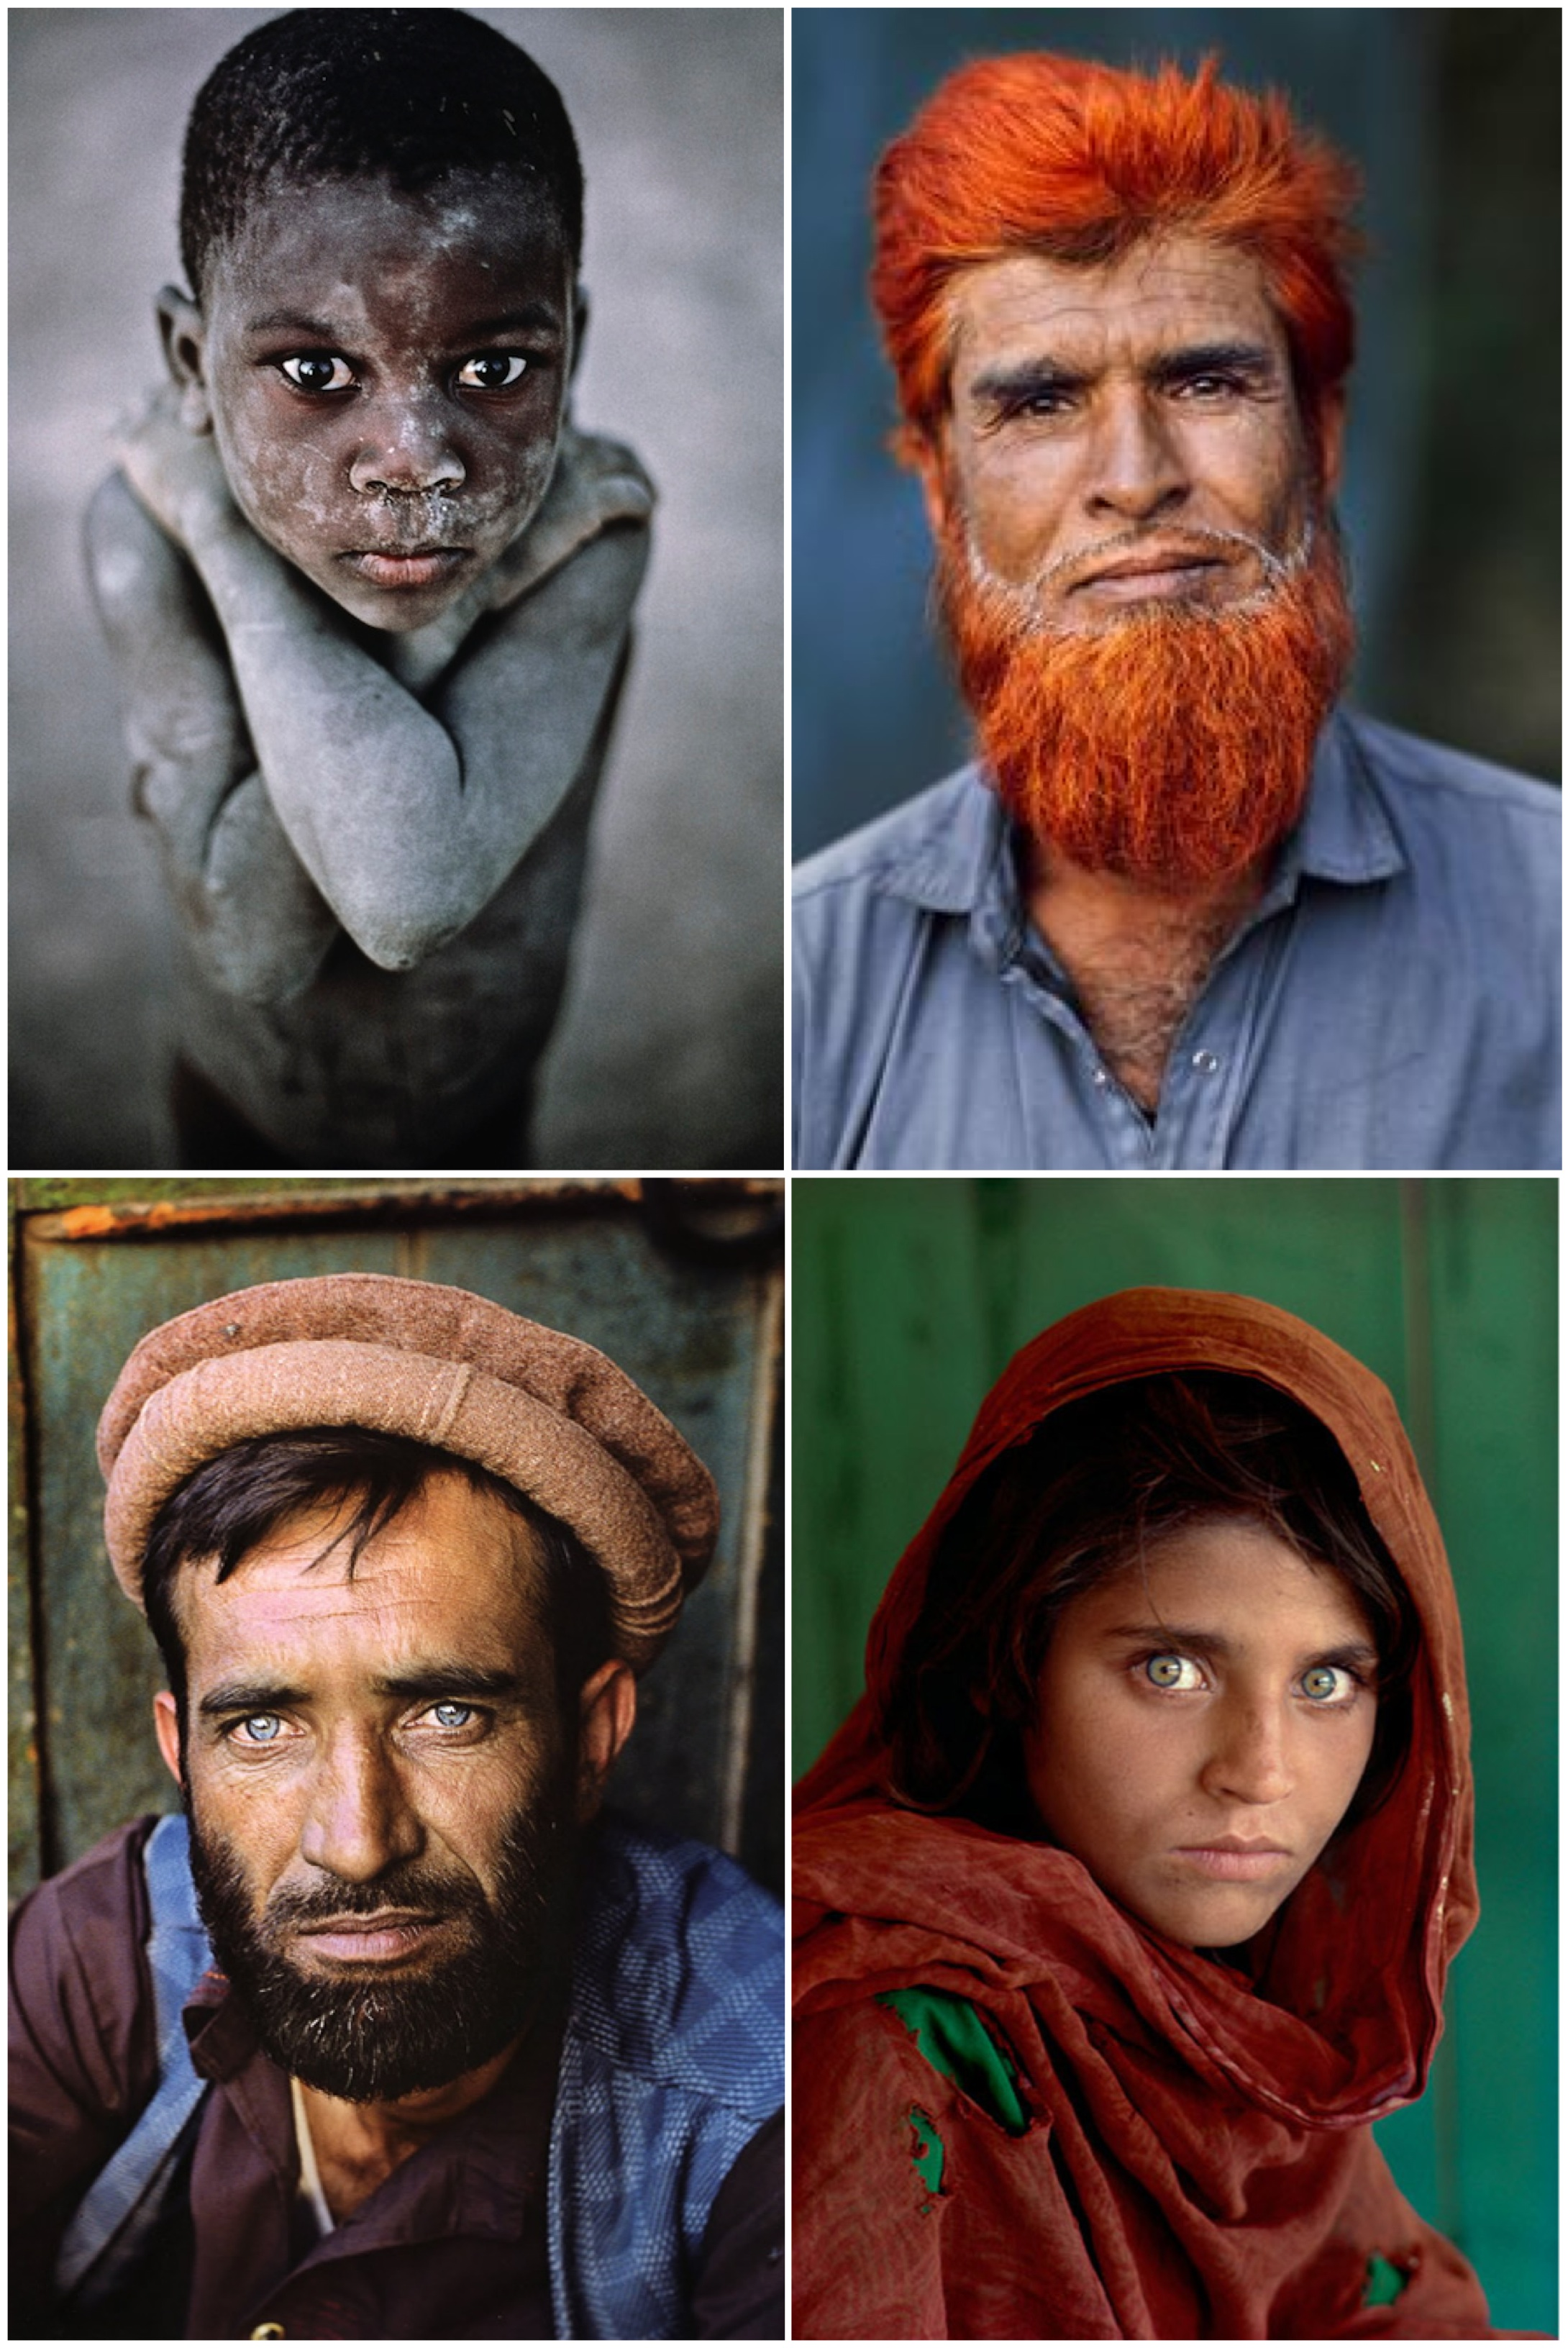 www.stevemccurry.com